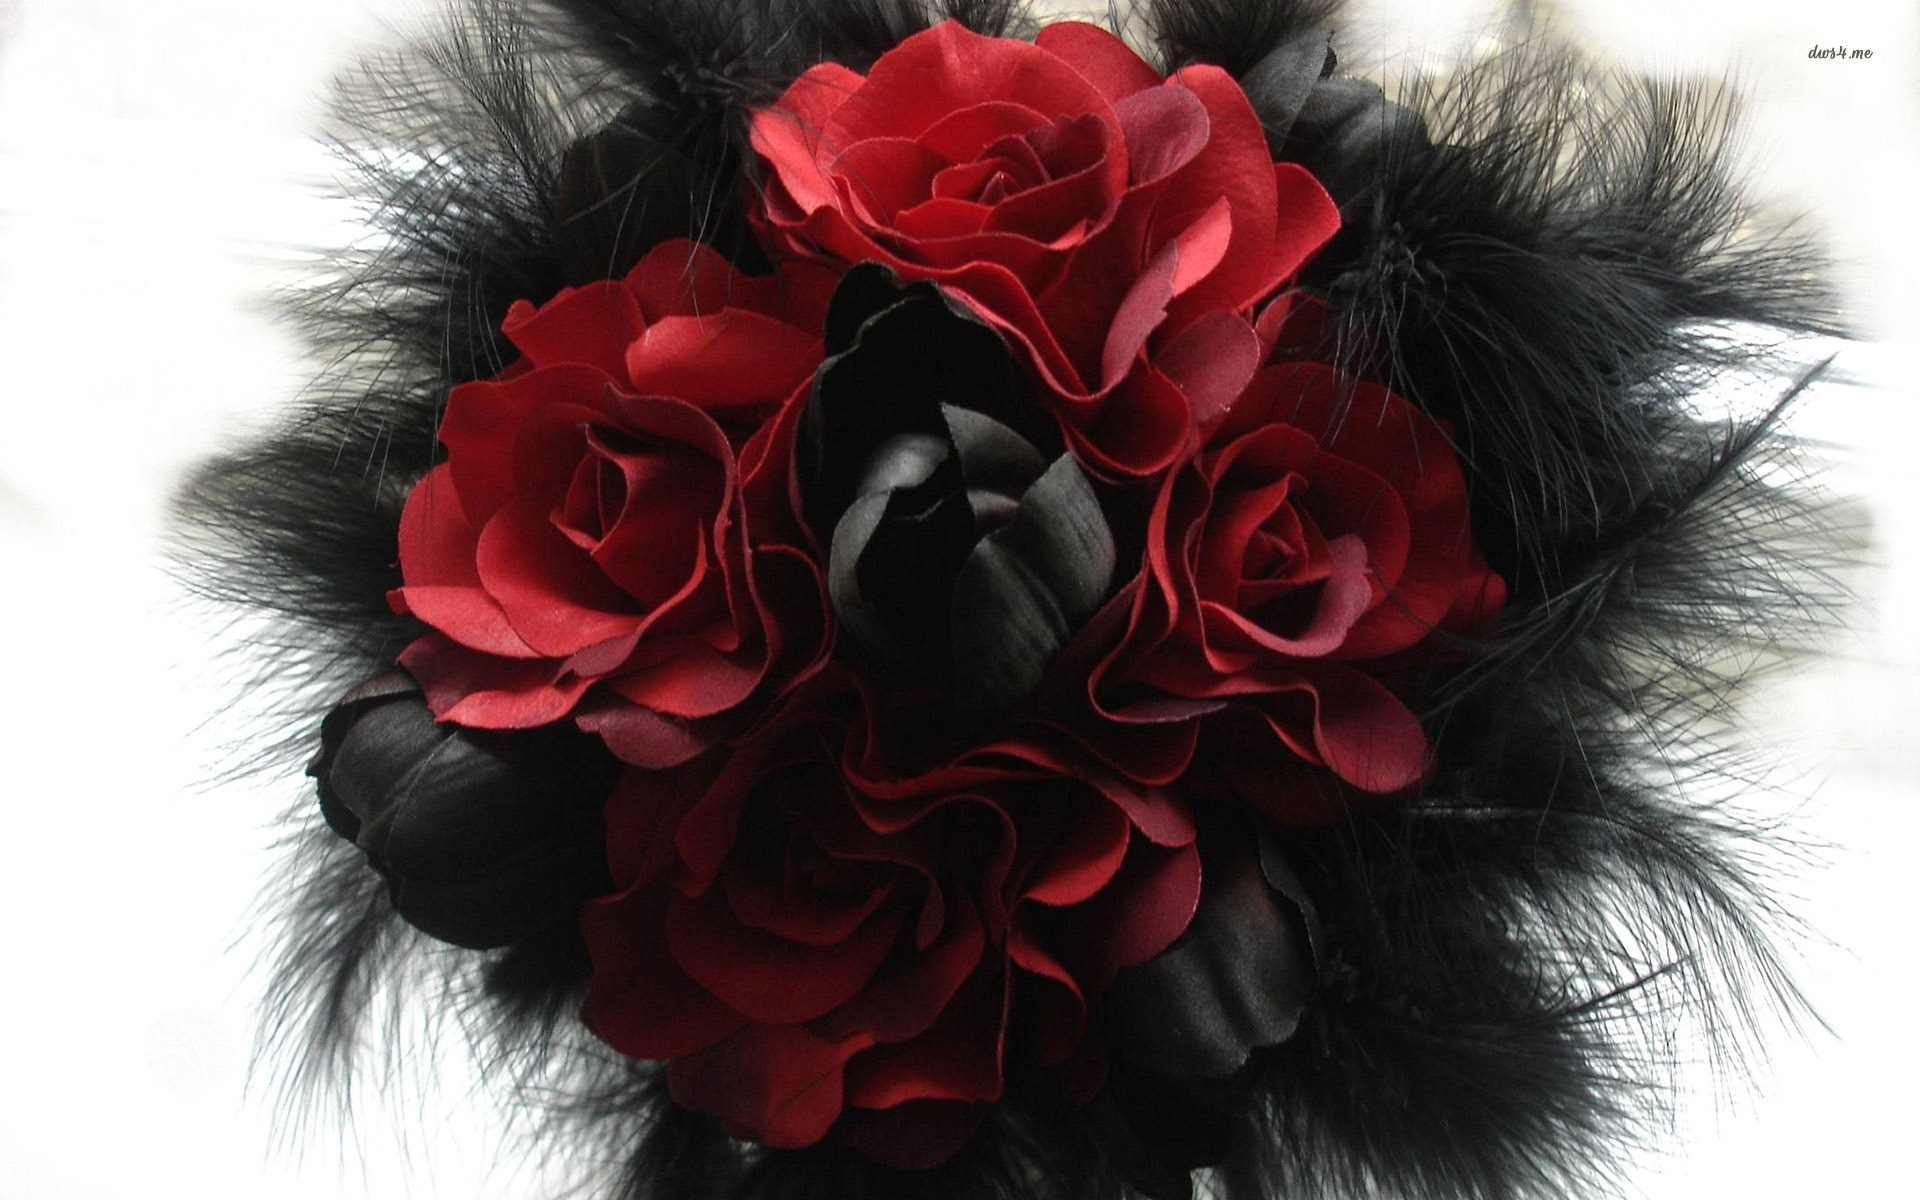 Black Rose Backgrounds For Free Wallpaper Black And Red Combination Rose 1920x1200 Download Hd Wallpaper Wallpapertip